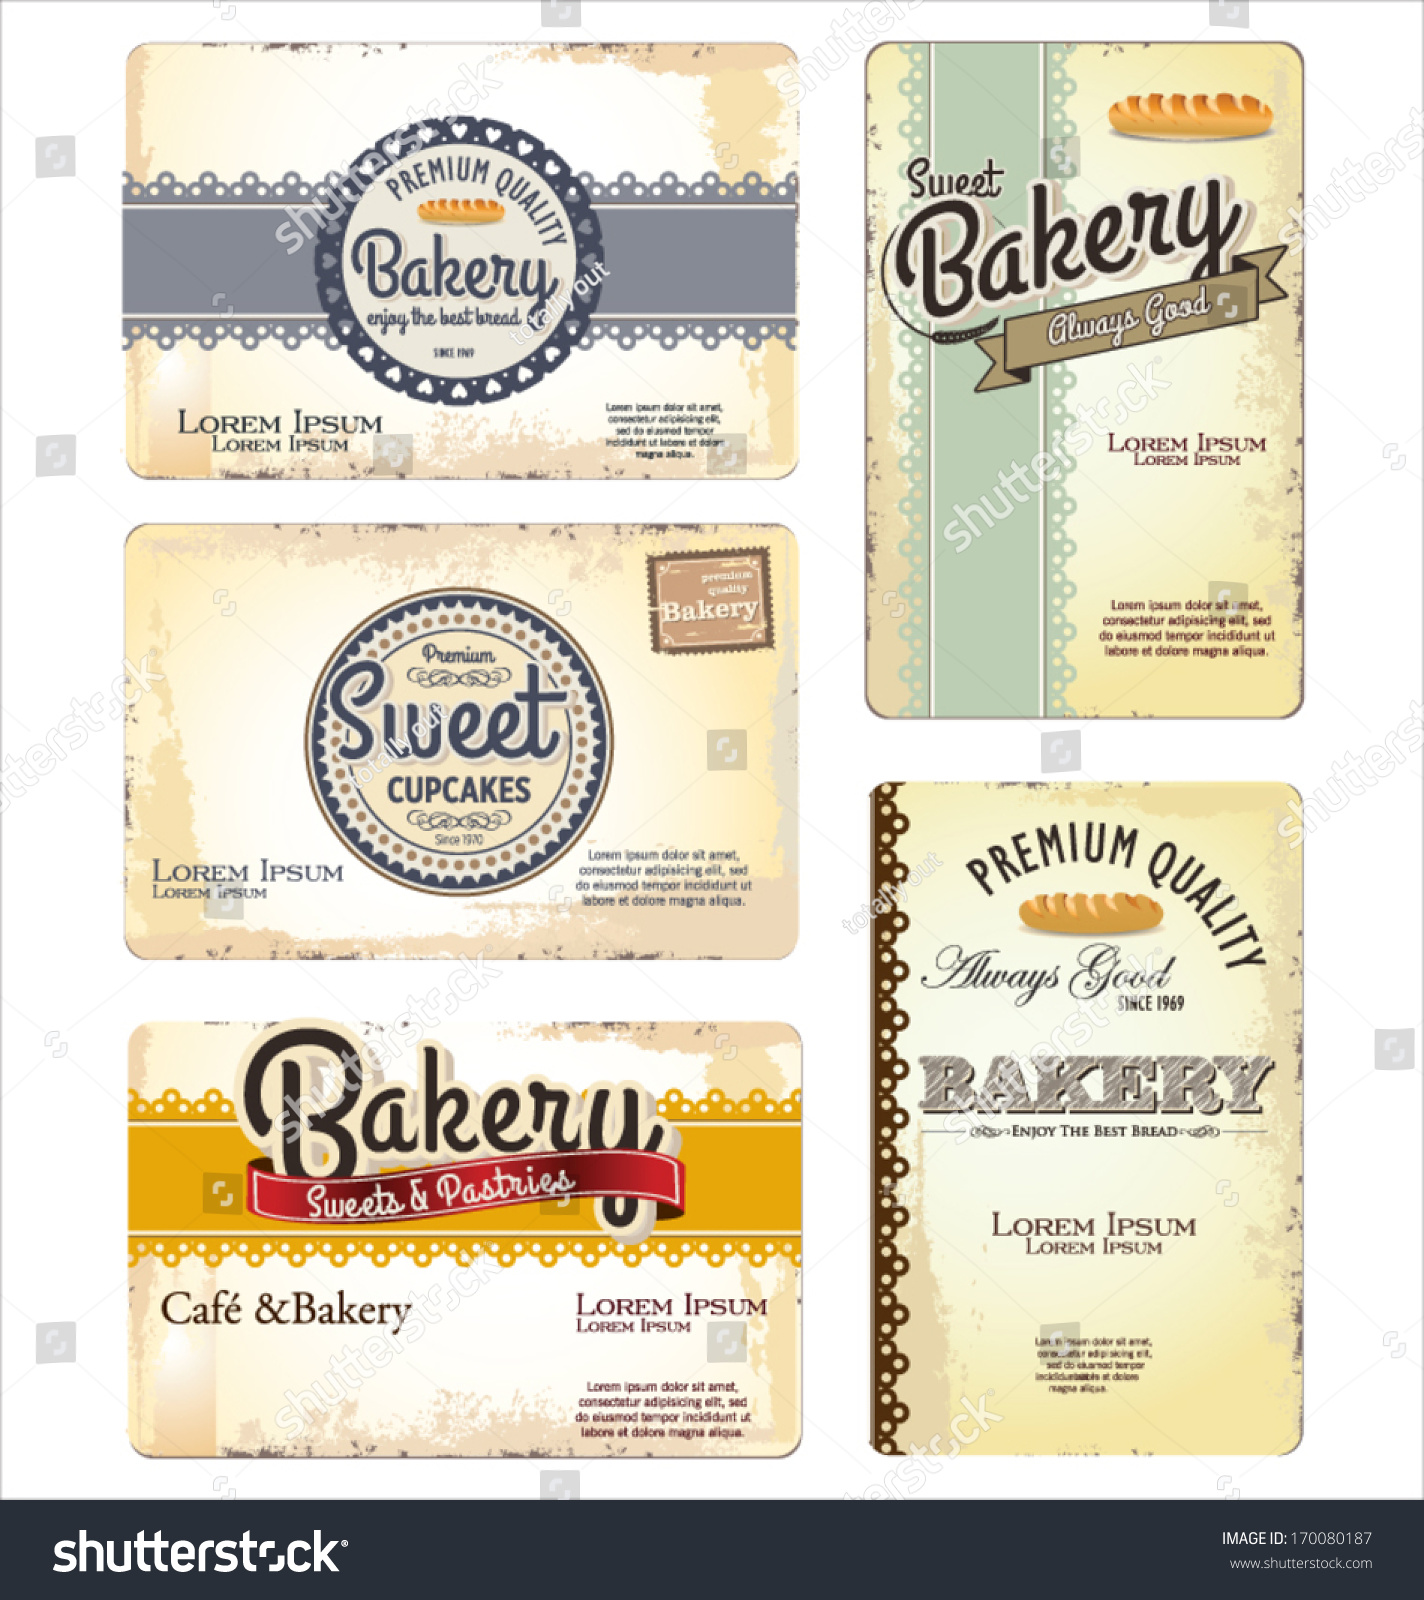 Set 5 Bakery Retro Business Card Stock Vector Shutterstock